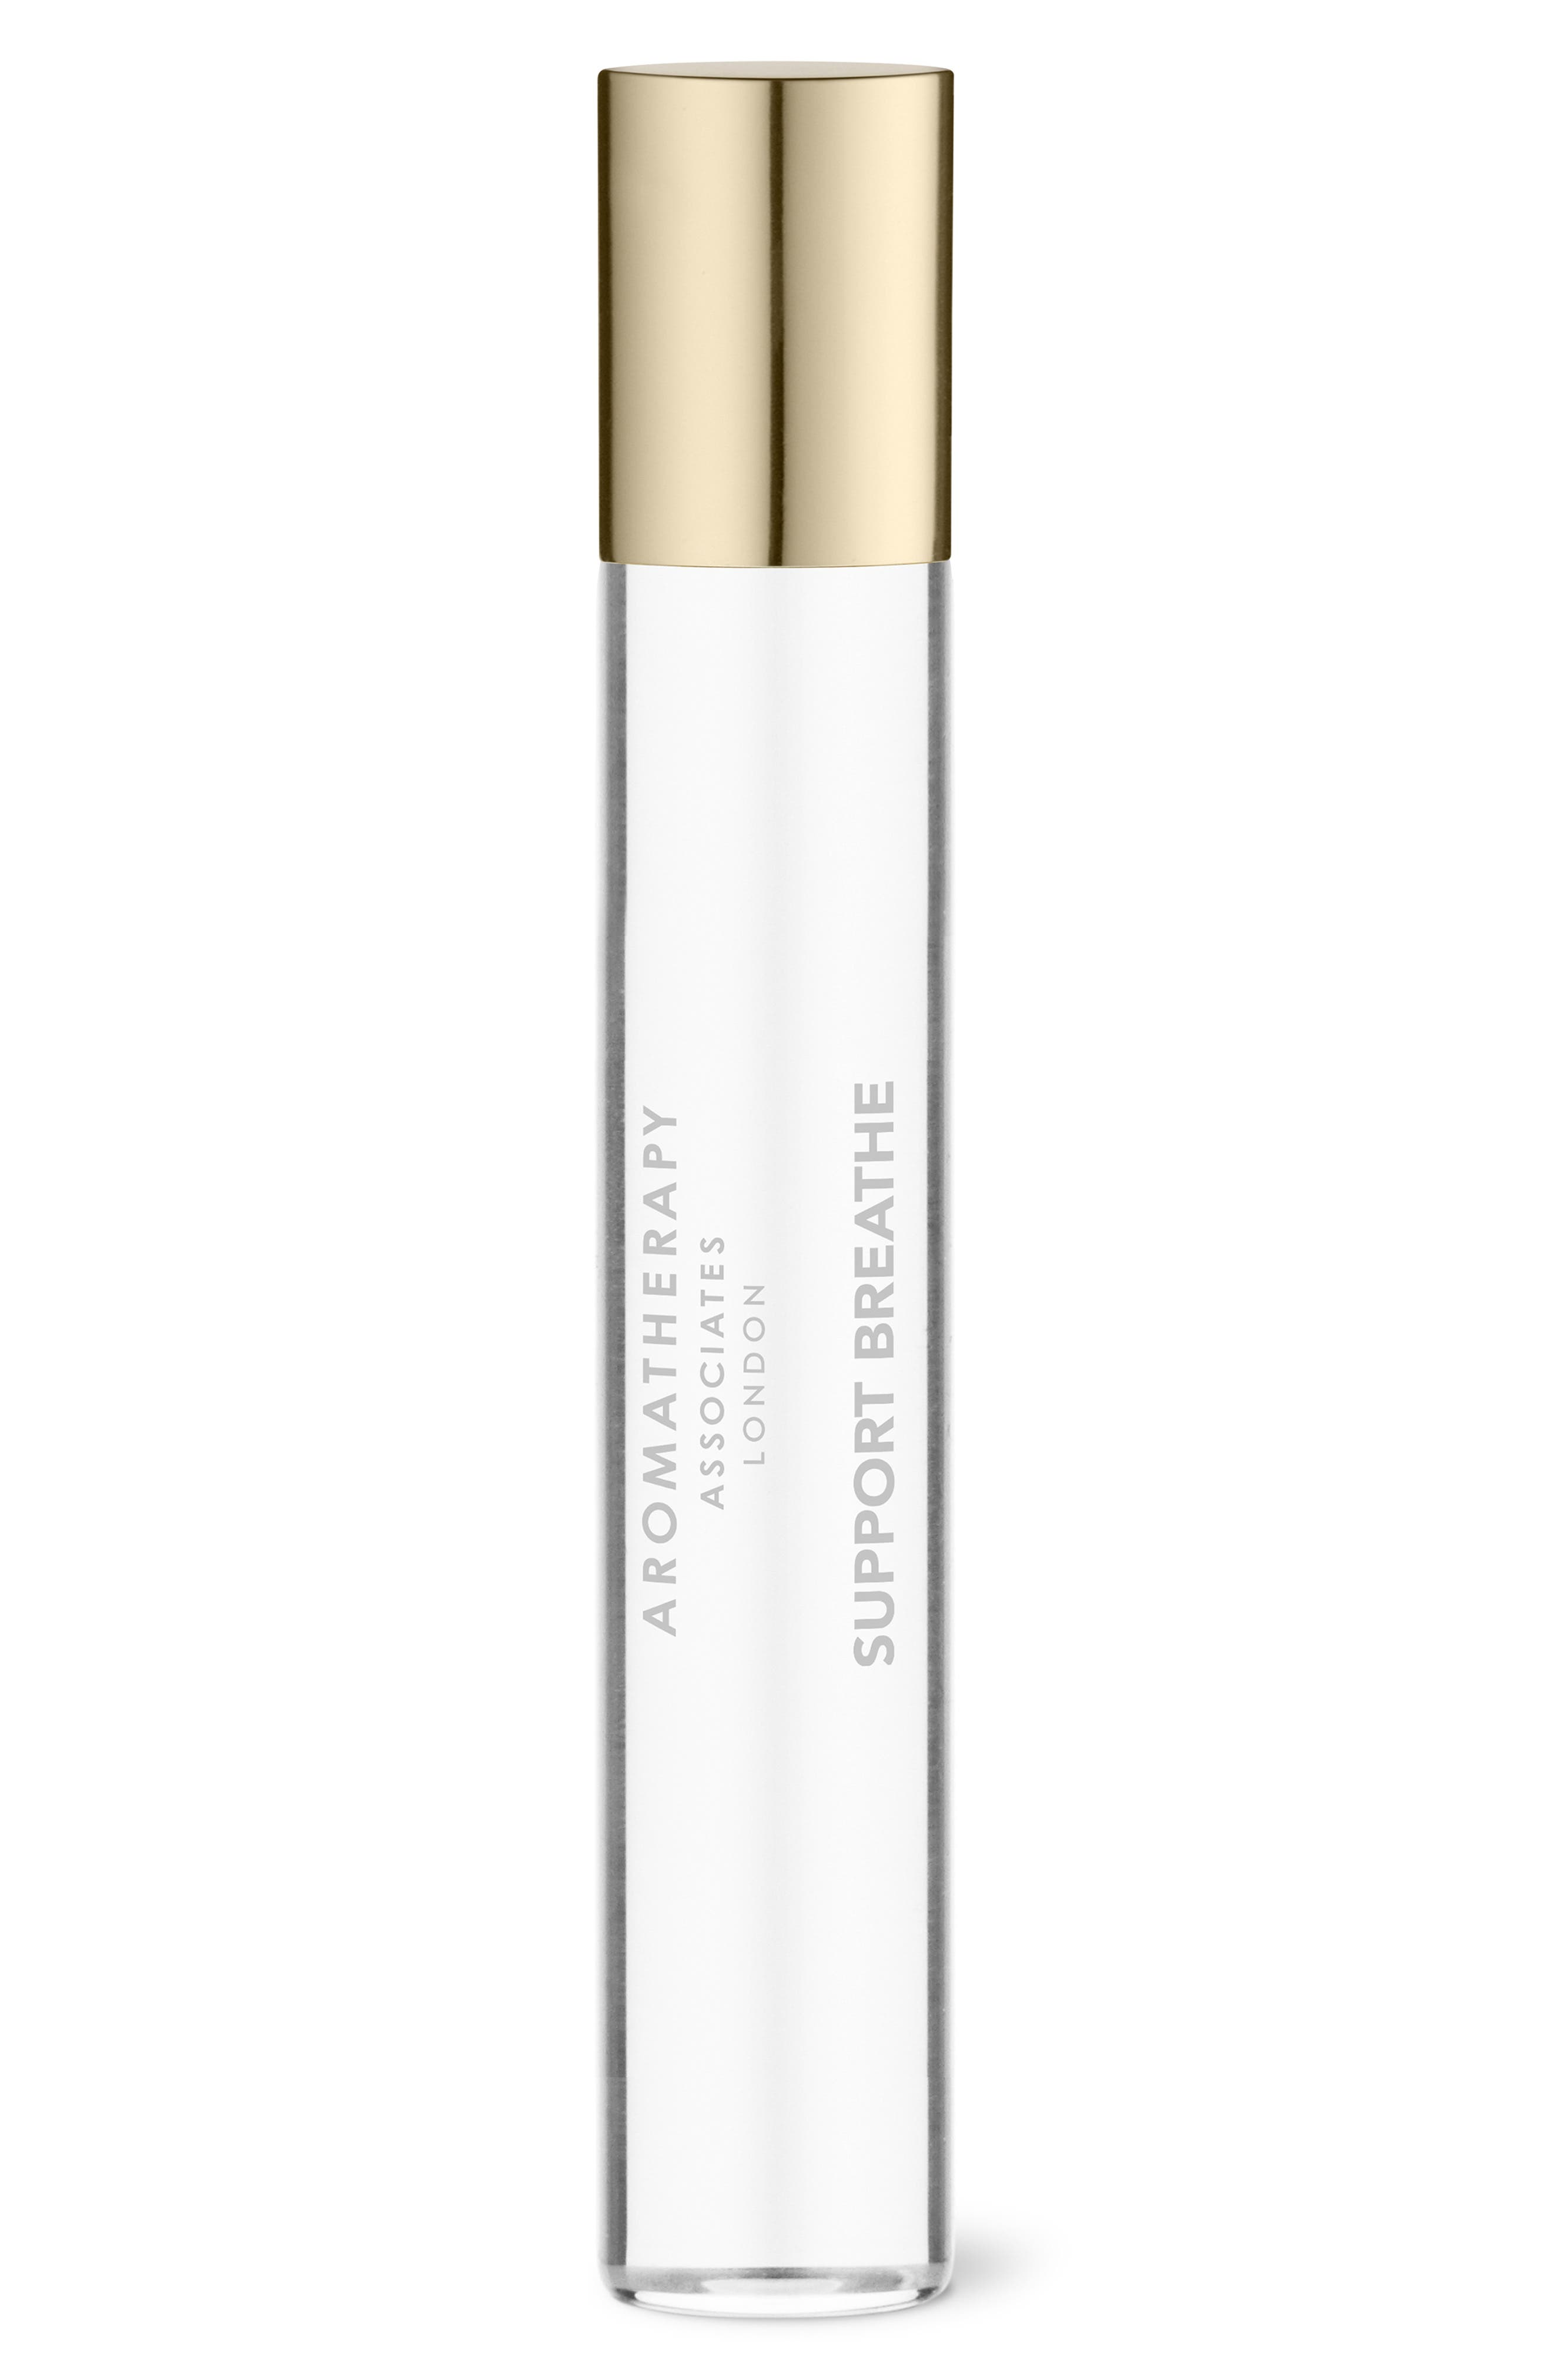 Support Breathe Rollerball